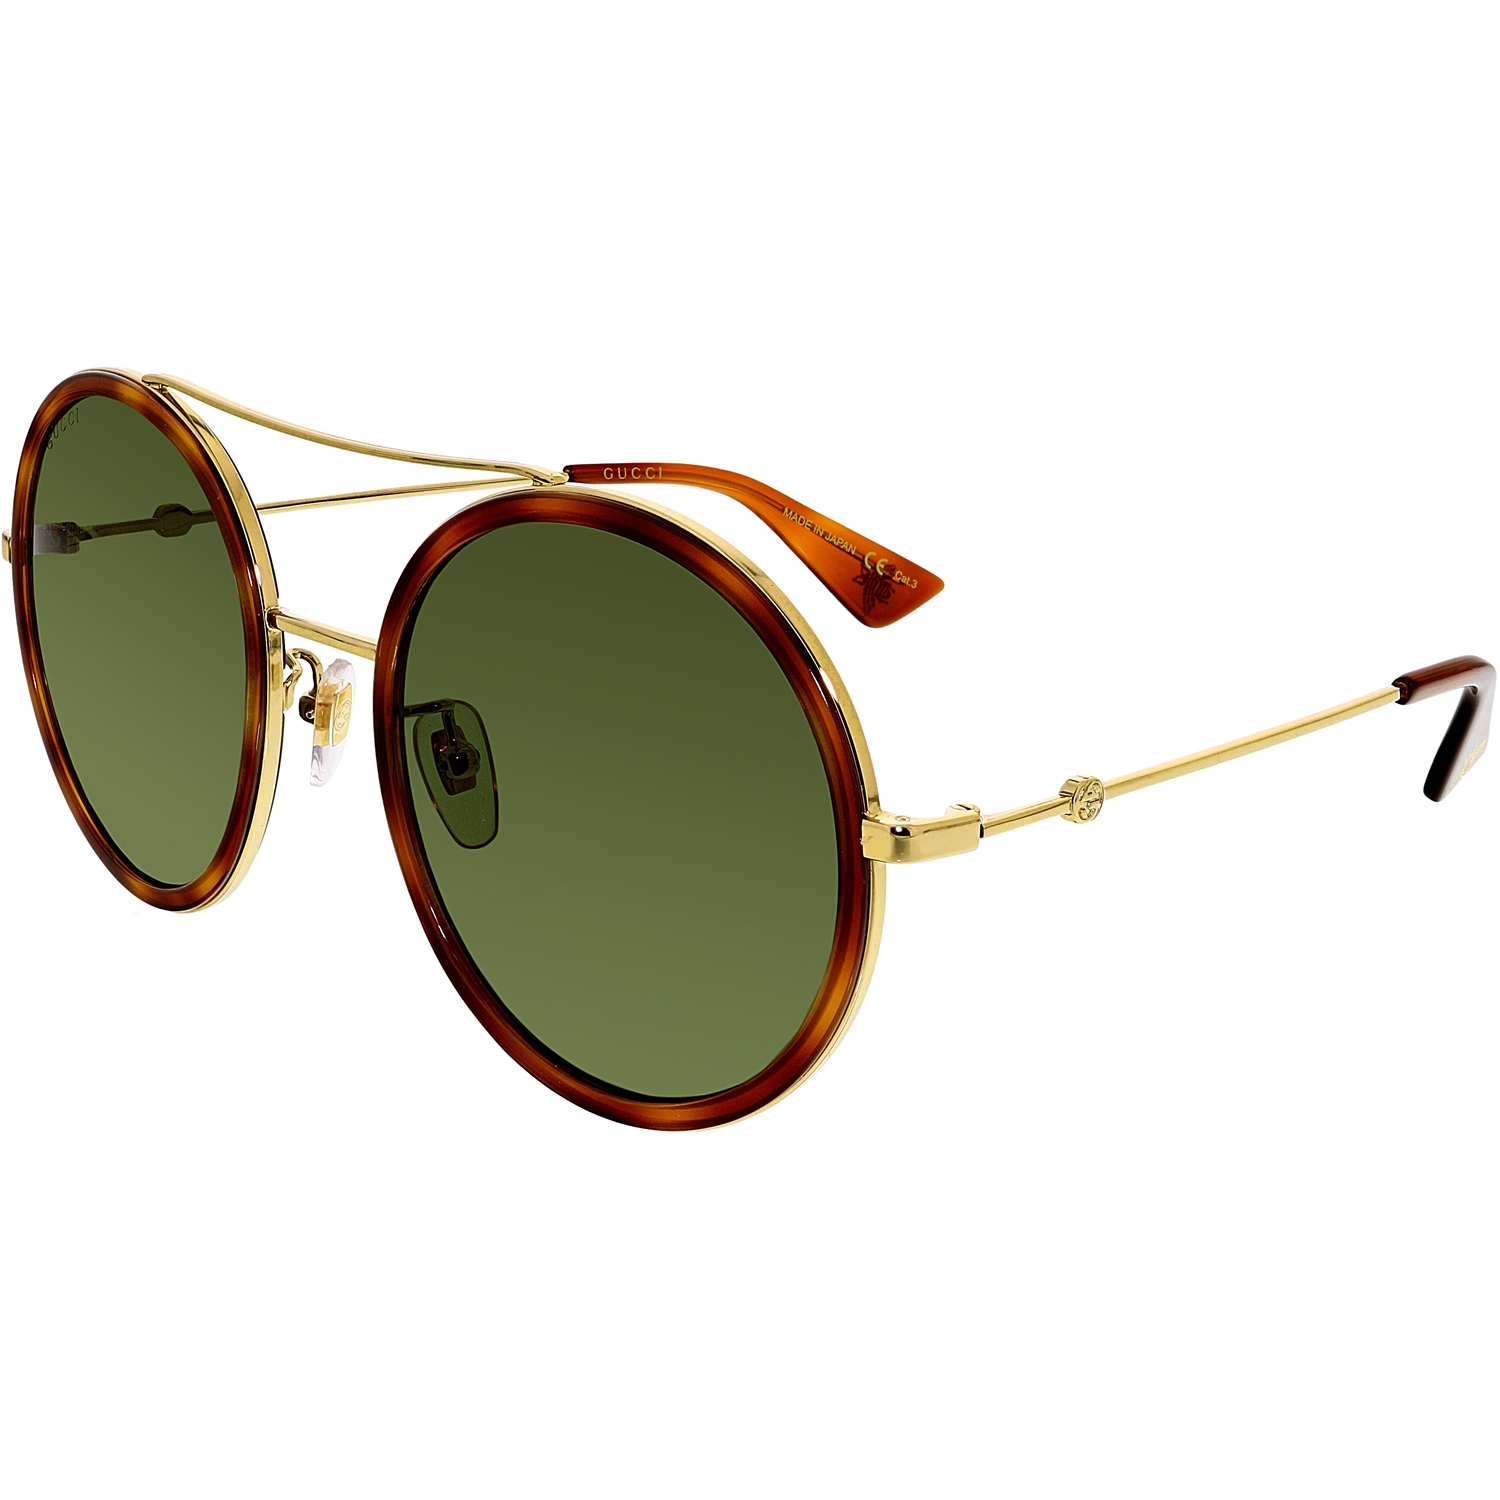 6bb64318f7a Gucci Women s Urban Web Block Round Sunglasses Gold Havana With Green Lens  One Size